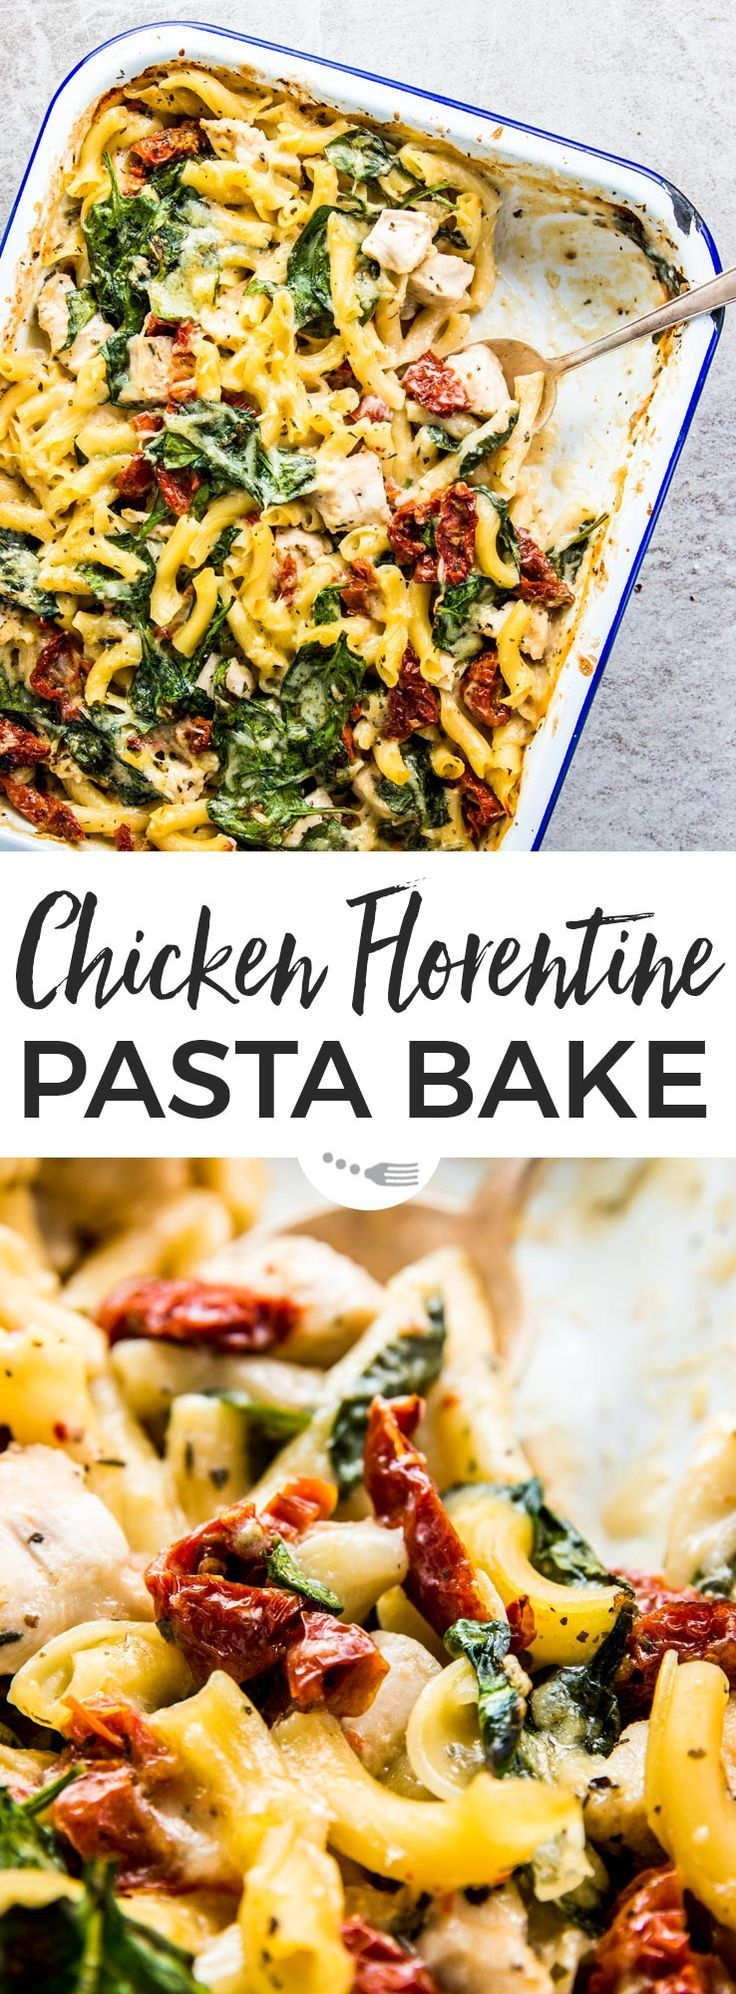 You don't even need to pre-cook the pasta for this Lazy Mom's Chicken Florentine Pasta Casserole! With a quick prep time (just 5 minutes!) and hands-off cooking in the oven, this is the ultimate healthy and easy weeknight family dinner! Grab the recipe he